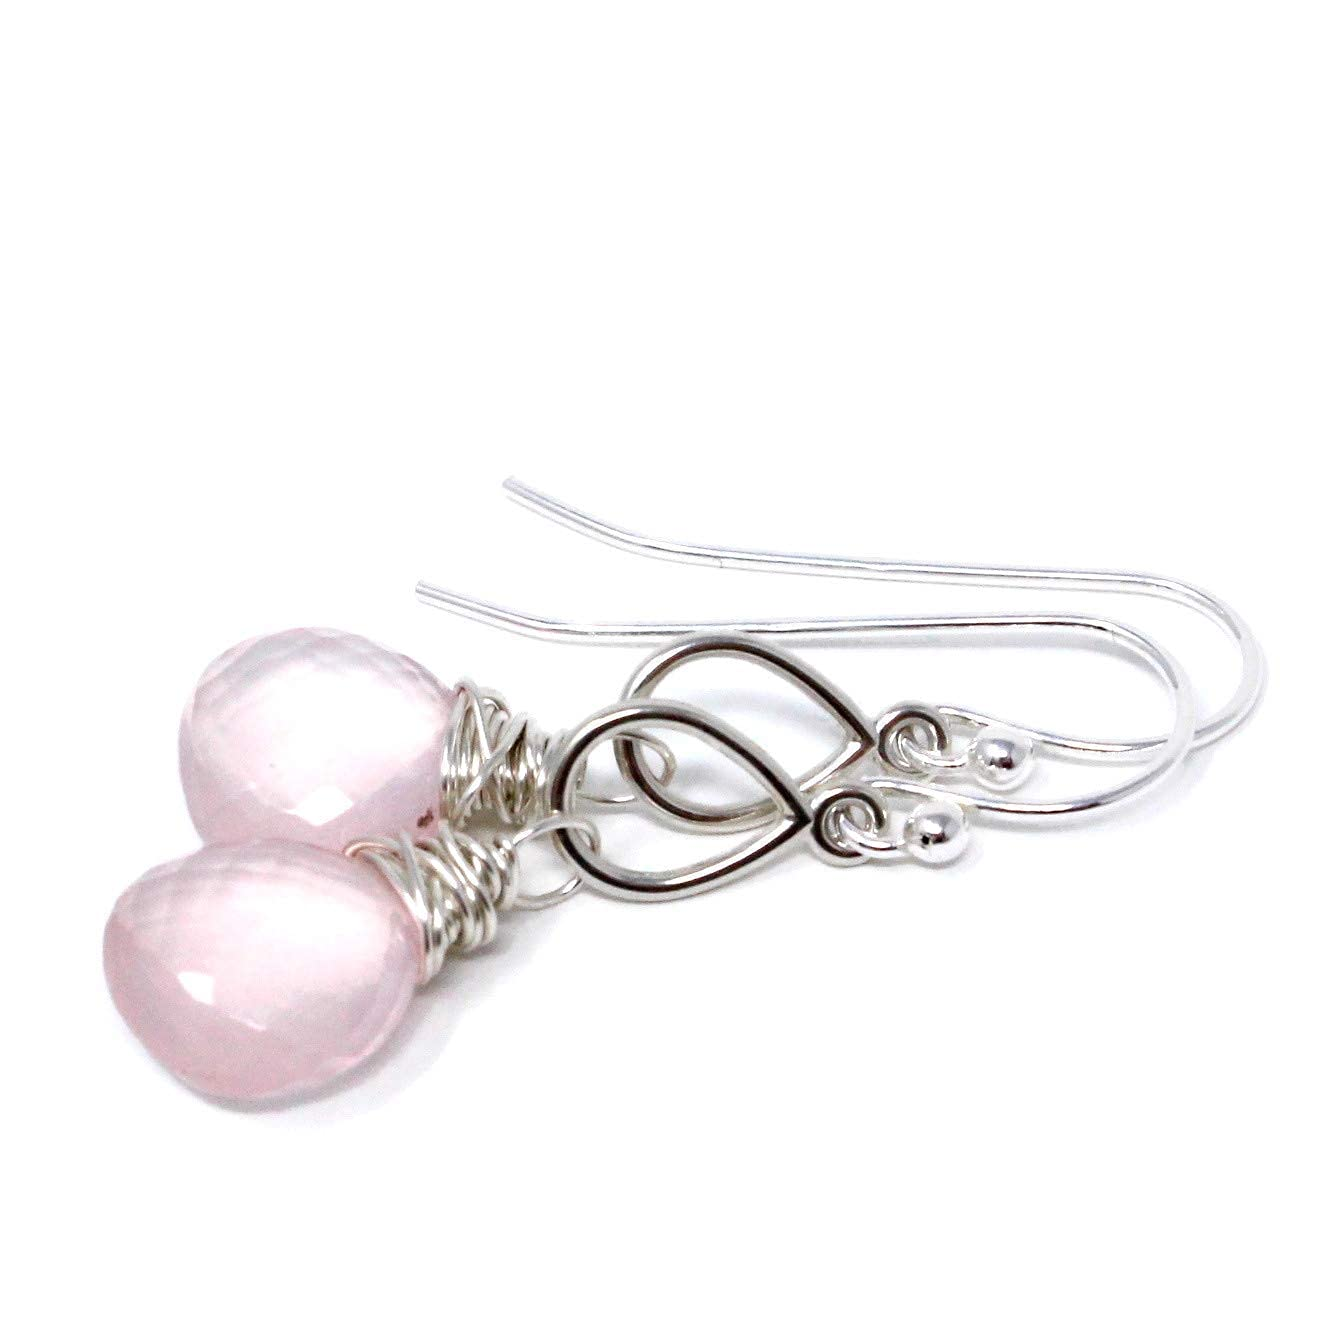 Rose Quartz Earrings Petite Pale Pink Oklahoma City Mall At the price Faceted Silver Gemstones